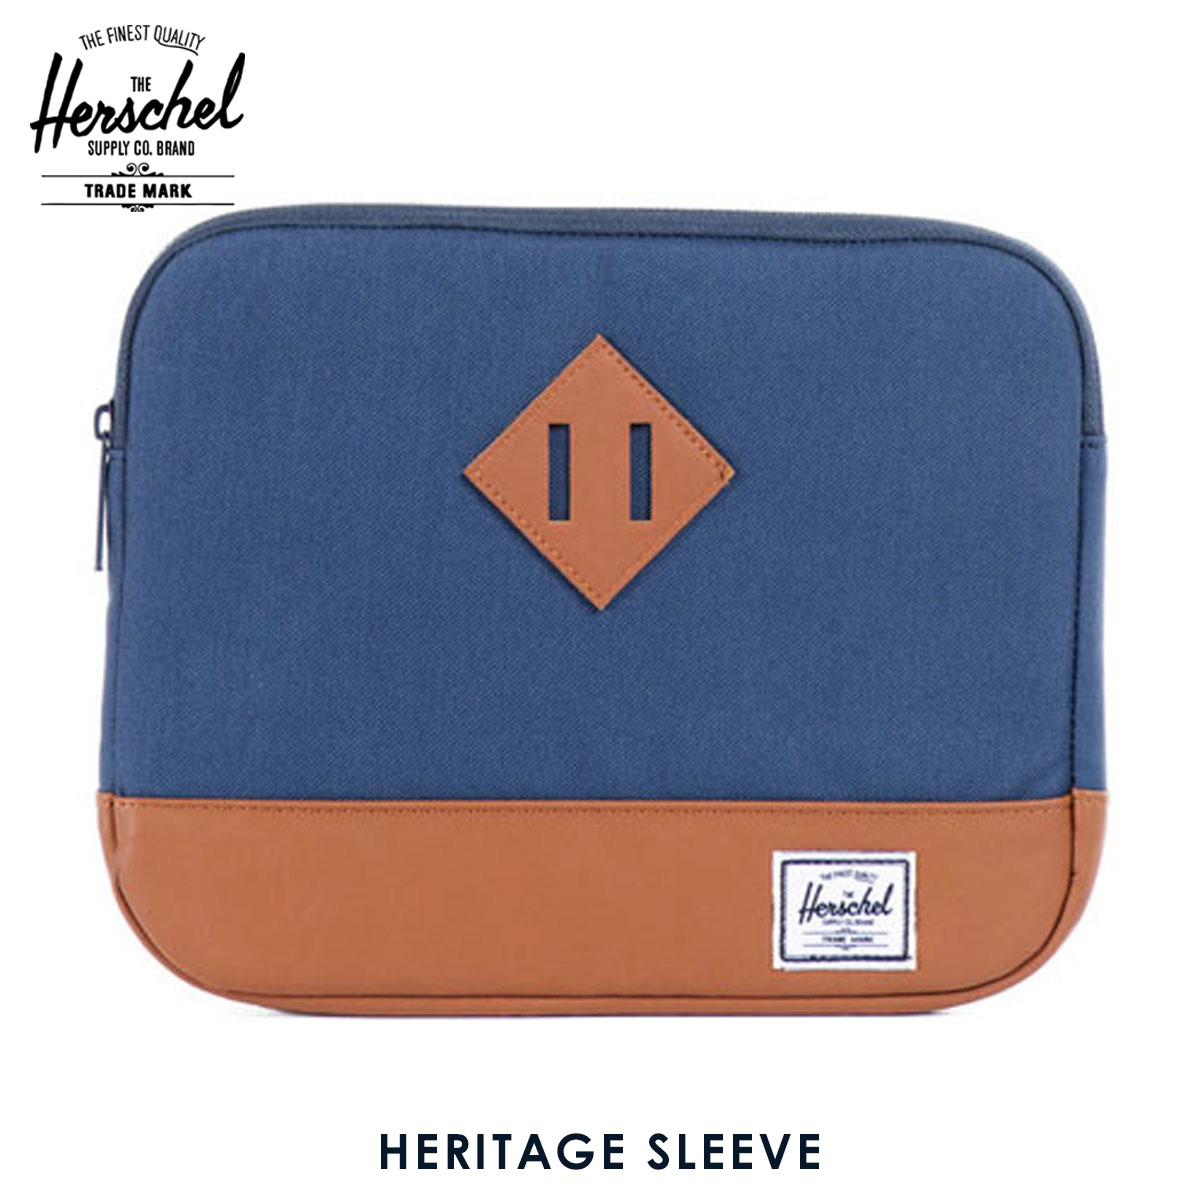 ハーシェル タブレットケース 正規販売店 Herschel Supply ハーシェルサプライ iPad Air ケース Heritage Sleeve for iPad Air Sleeves 10177-00007-OS Navy A52B B3C C3D D0E E06F